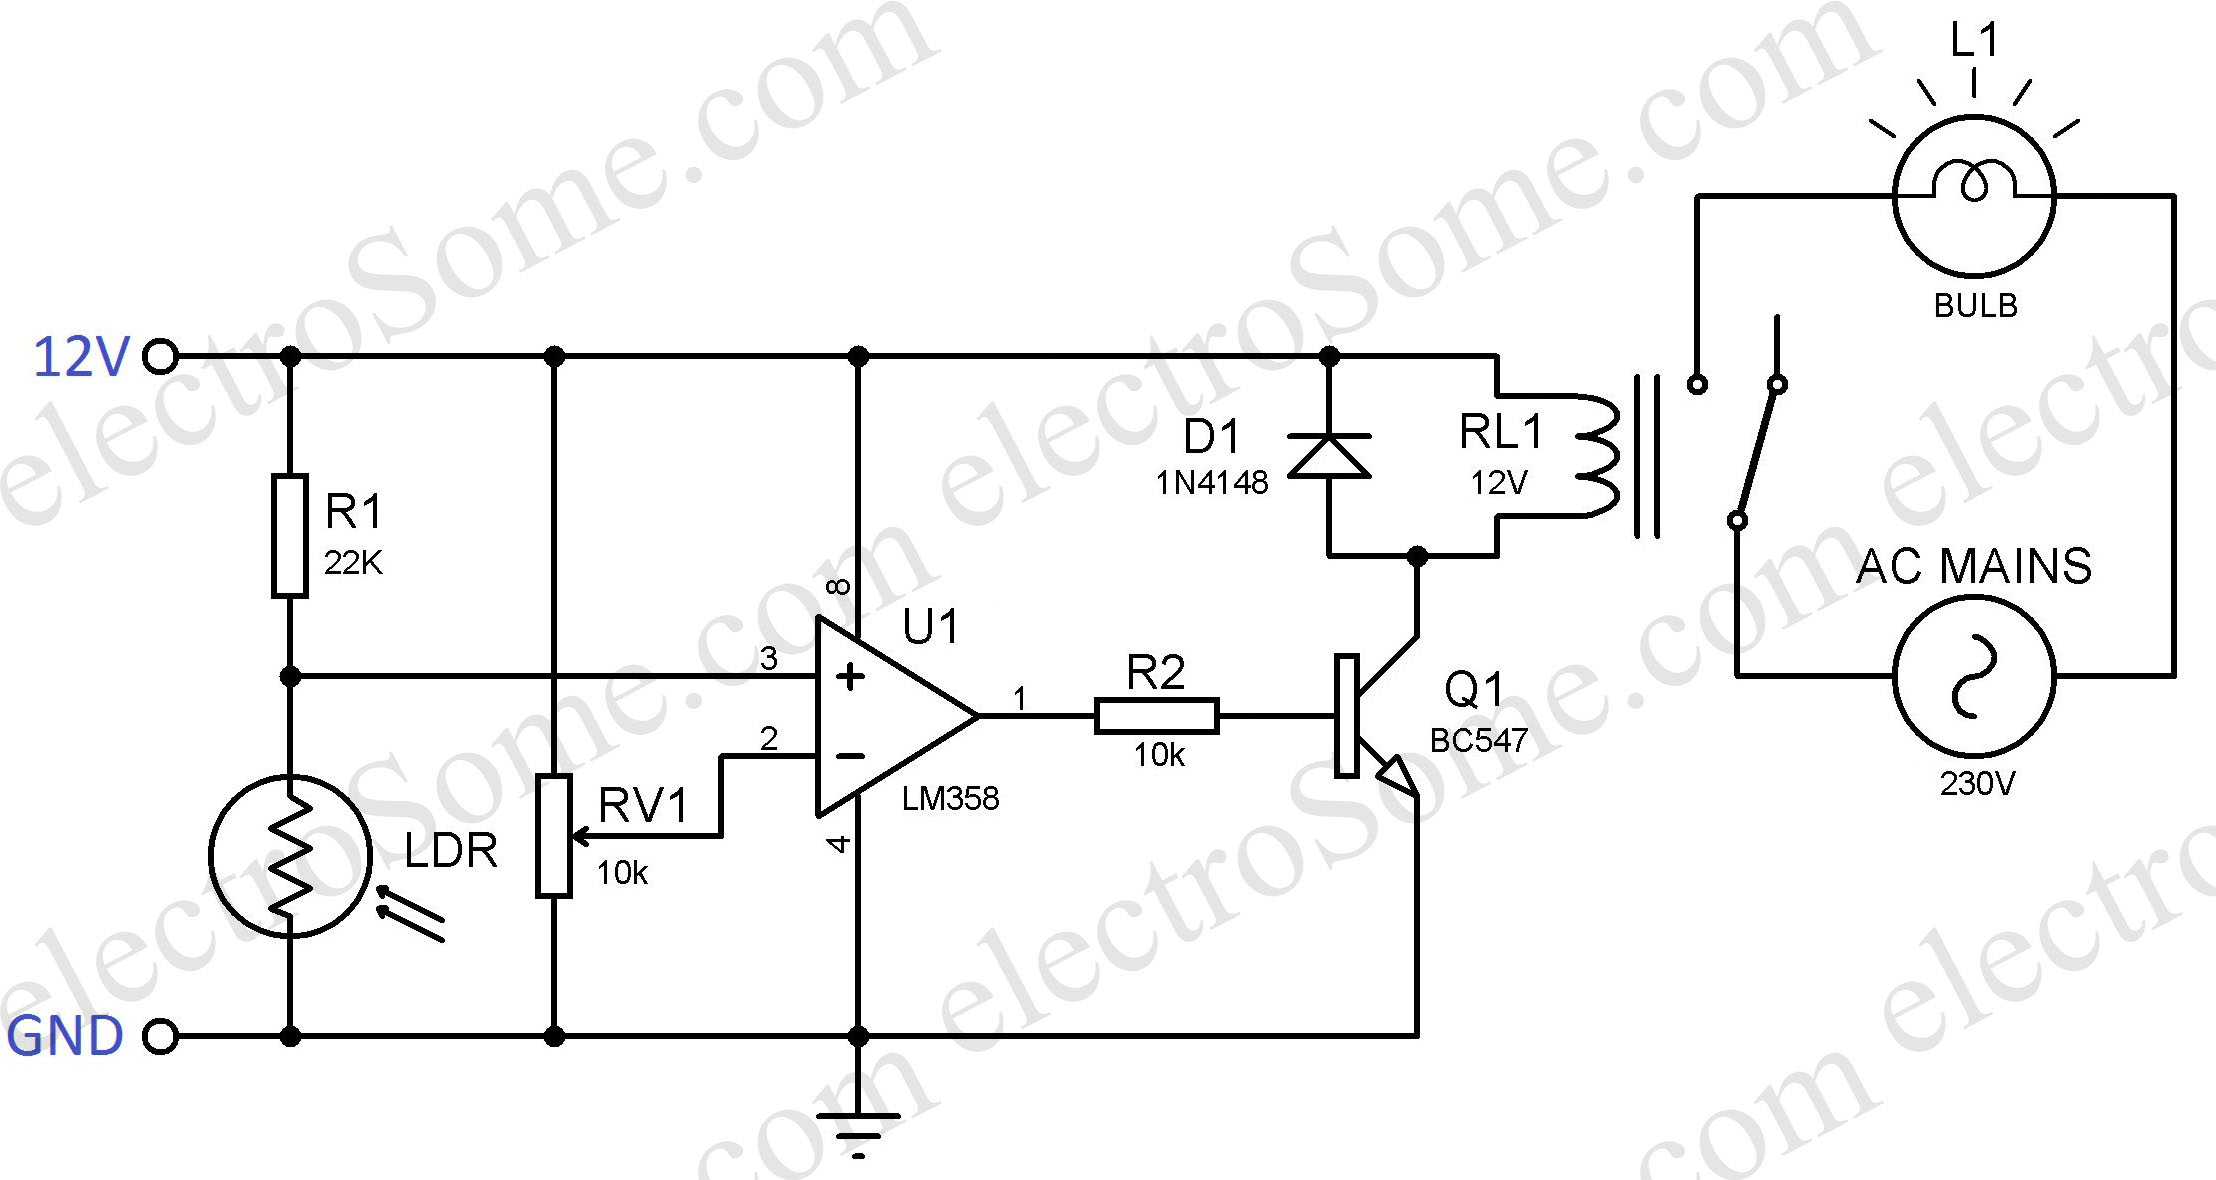 Automatic Night Lamp Using Ldr Relay Wiring Diagram Explanation Circuit